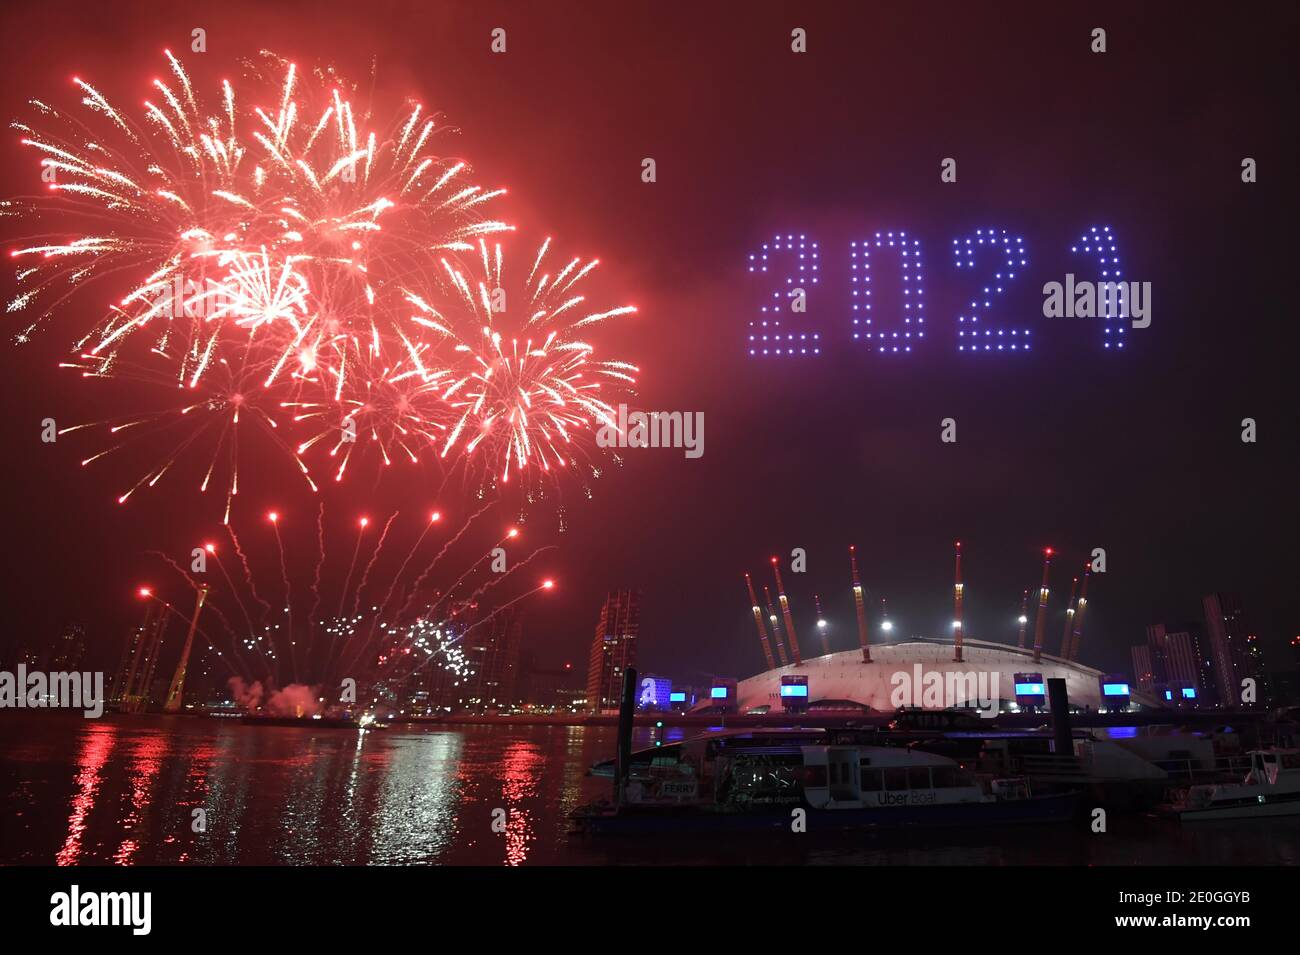 Fireworks and drones illuminate the night sky over the The O2 in London as they form a light display as London's normal New Year's Eve fireworks display was cancelled due to the coronavirus pandemic. Stock Photo